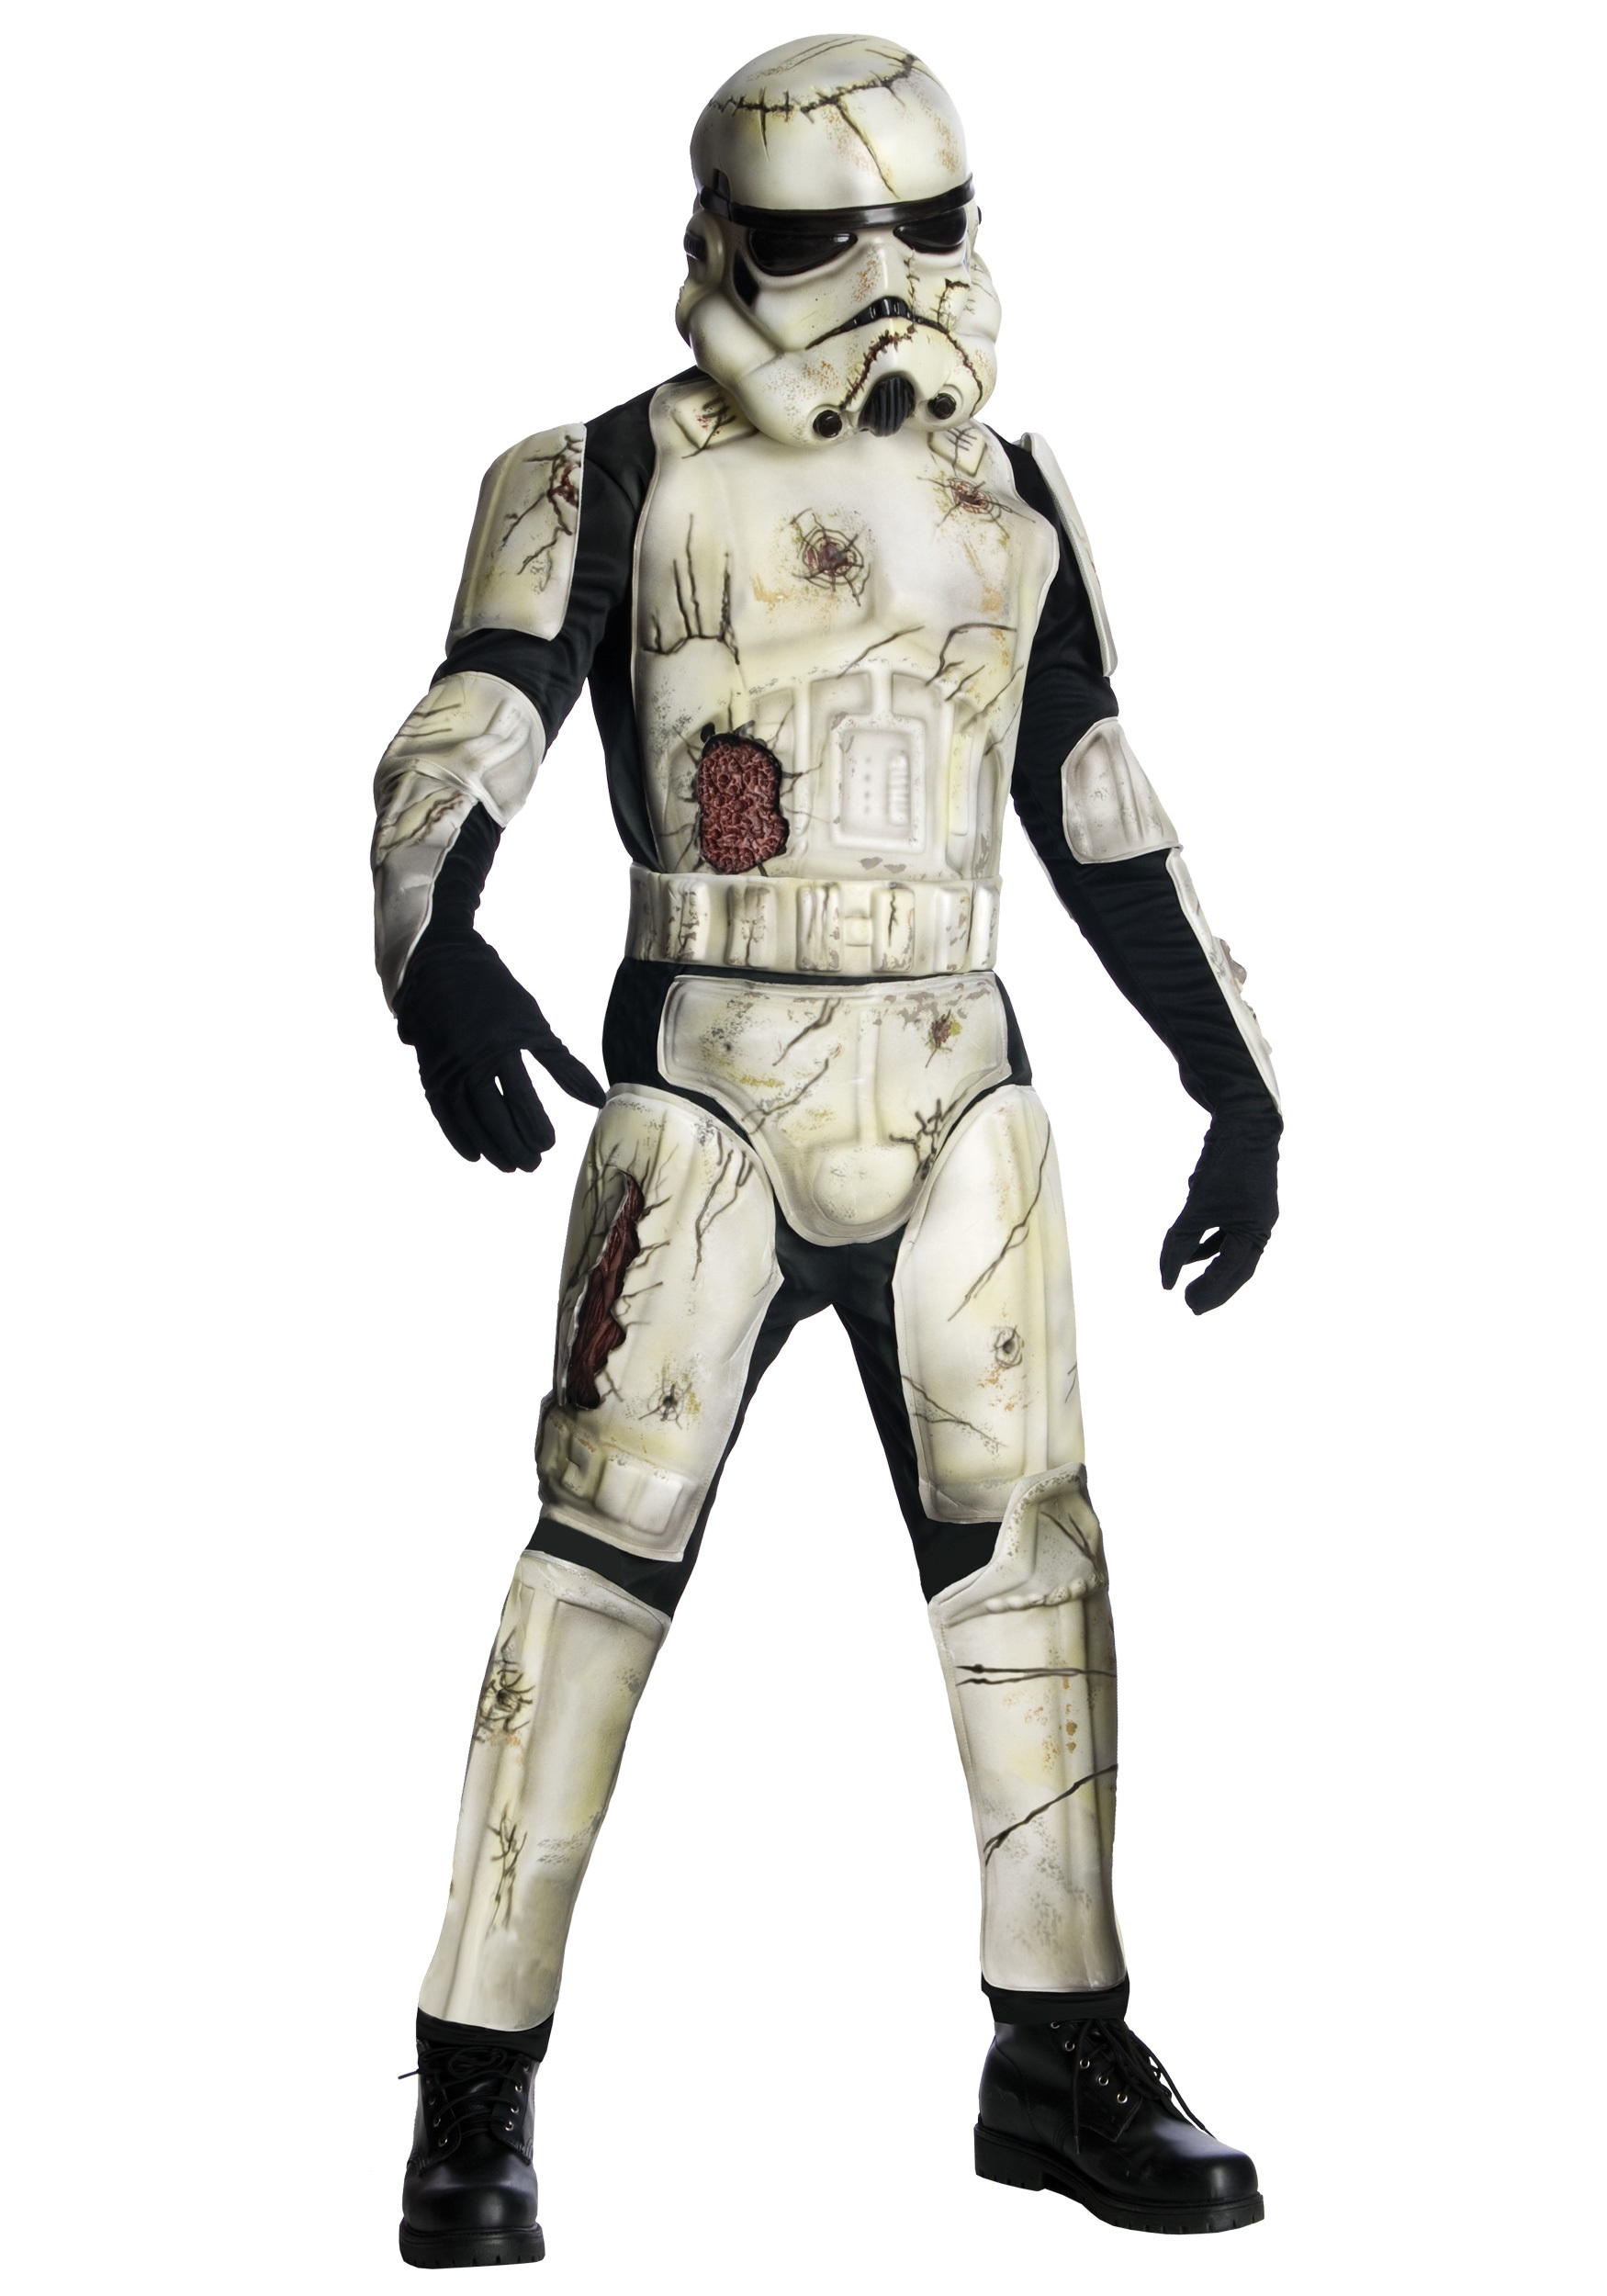 deluxe death trooper adult costume - men's scary star wars costume ideas